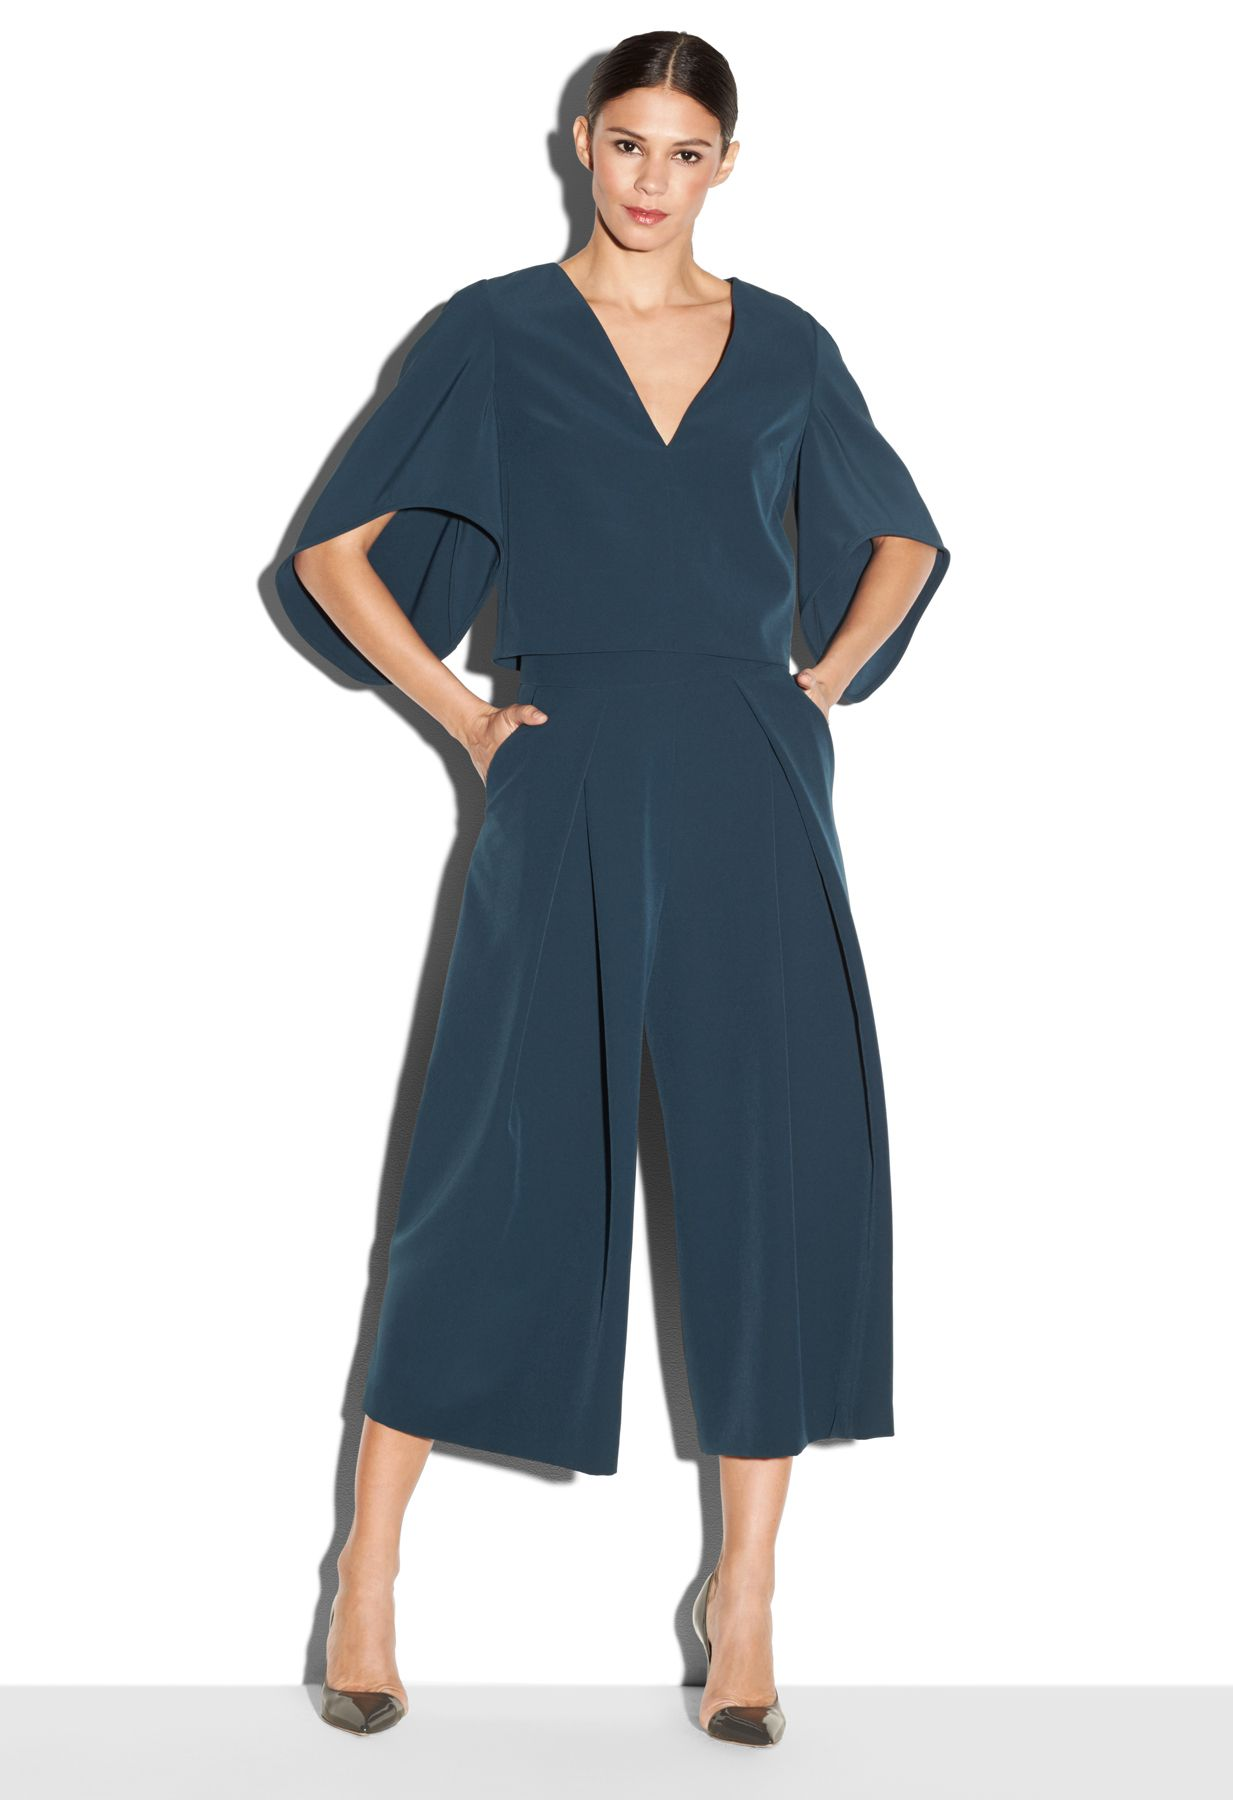 Pair with a MILLY blouse or wear with a tee for a casual look